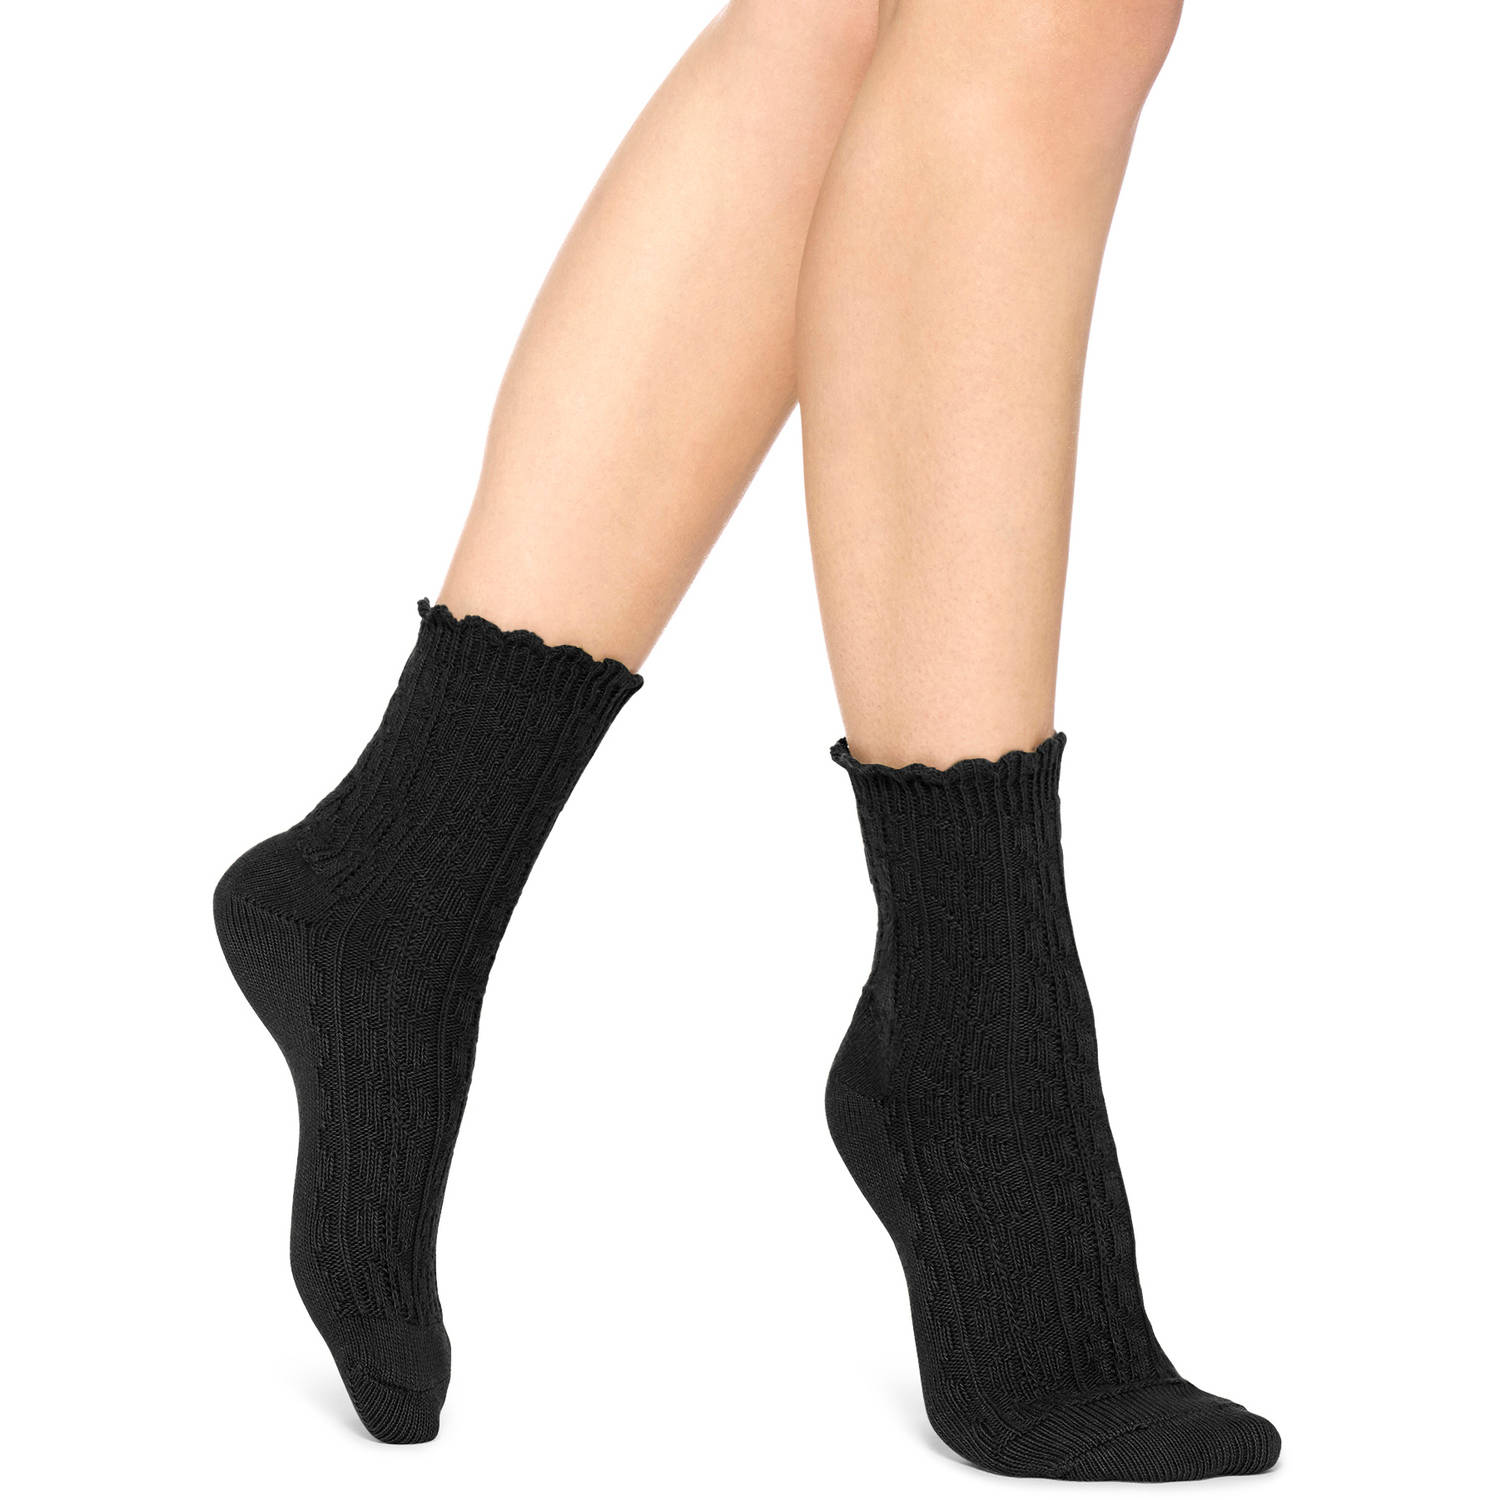 Women's Ruffle Mini Boot Sock Economical, stylish, and eye-catching shoes